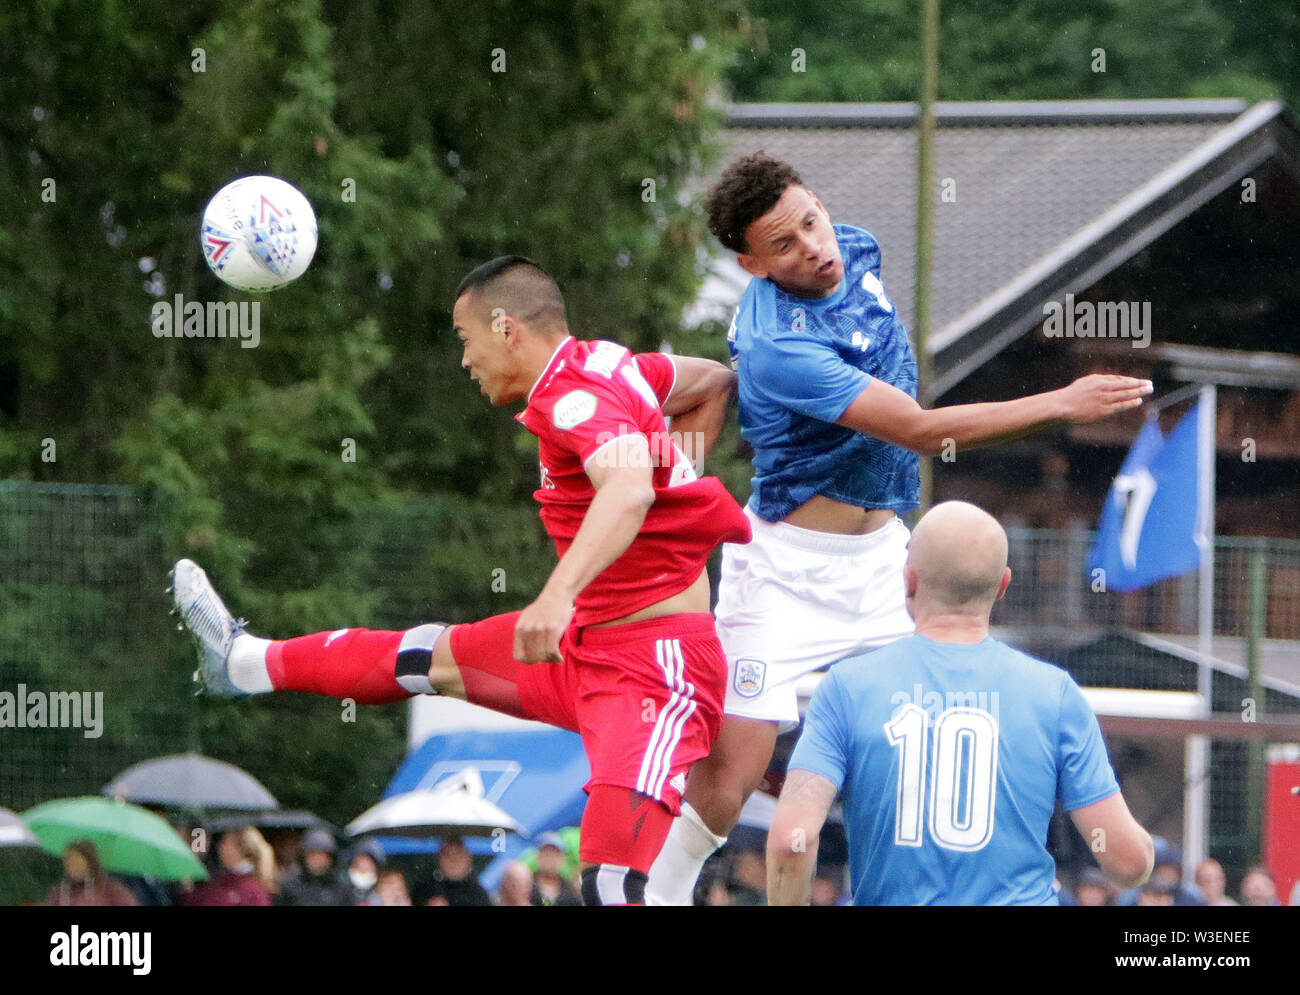 July 13, 2019 - Kitzbuehel, Austria - in the middle Rarmandi GREEN (Huddersfield), .pre season friendly 2019/20, .Huddersfield Town FC vs Hamburger SV,.Stadion Kitzbuehel/Austria, July 13, 2019, .Huddersfield Town, the relegated team of the Premiere League wins in a pre season friendly against the former German champion Hamburger SV. (Credit Image: © Wolfgang Fehrmann/ZUMA Wire) - Stock Image